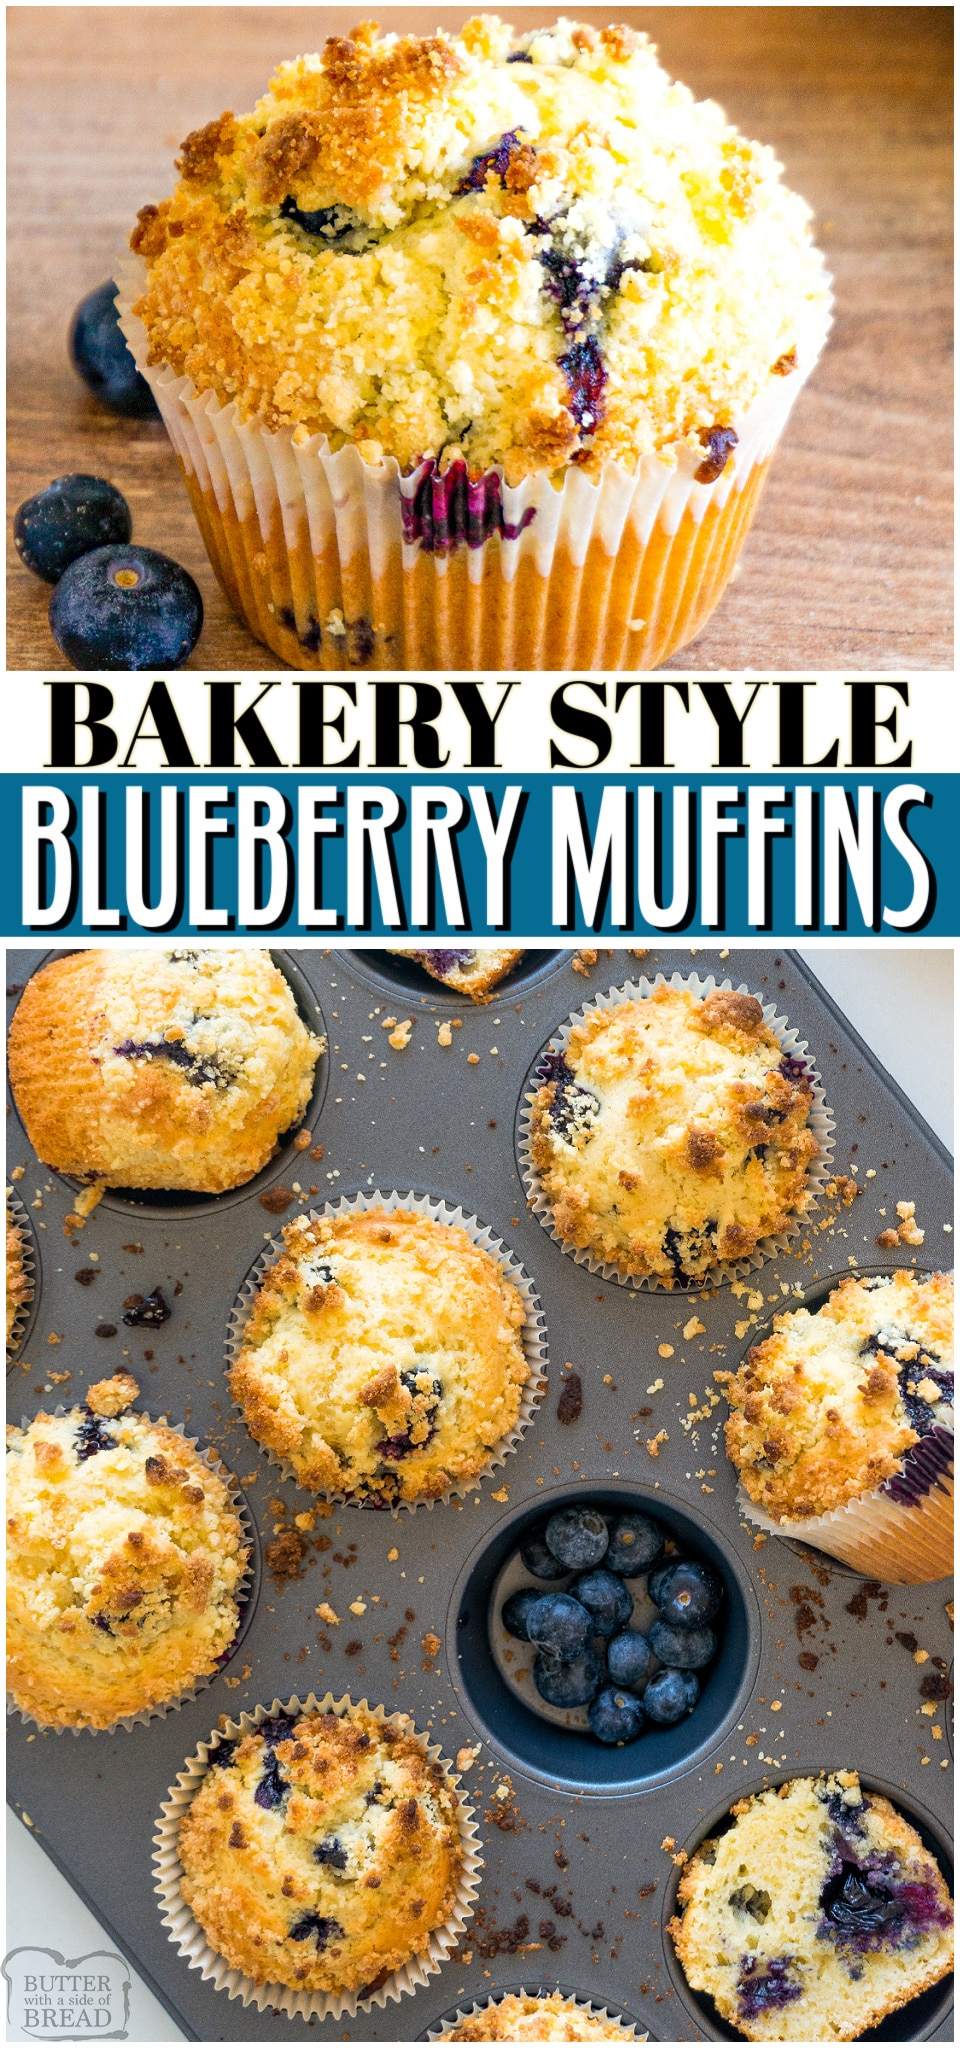 Blueberry Muffins with Crumb topping made better at home than at the bakery! Soft & flavorful blueberry muffins perfectly baked with a buttery crumble on top. #muffins #blueberry #bread #breakfast #easyrecipe from BUTTER WITH A SIDE OF BREAD